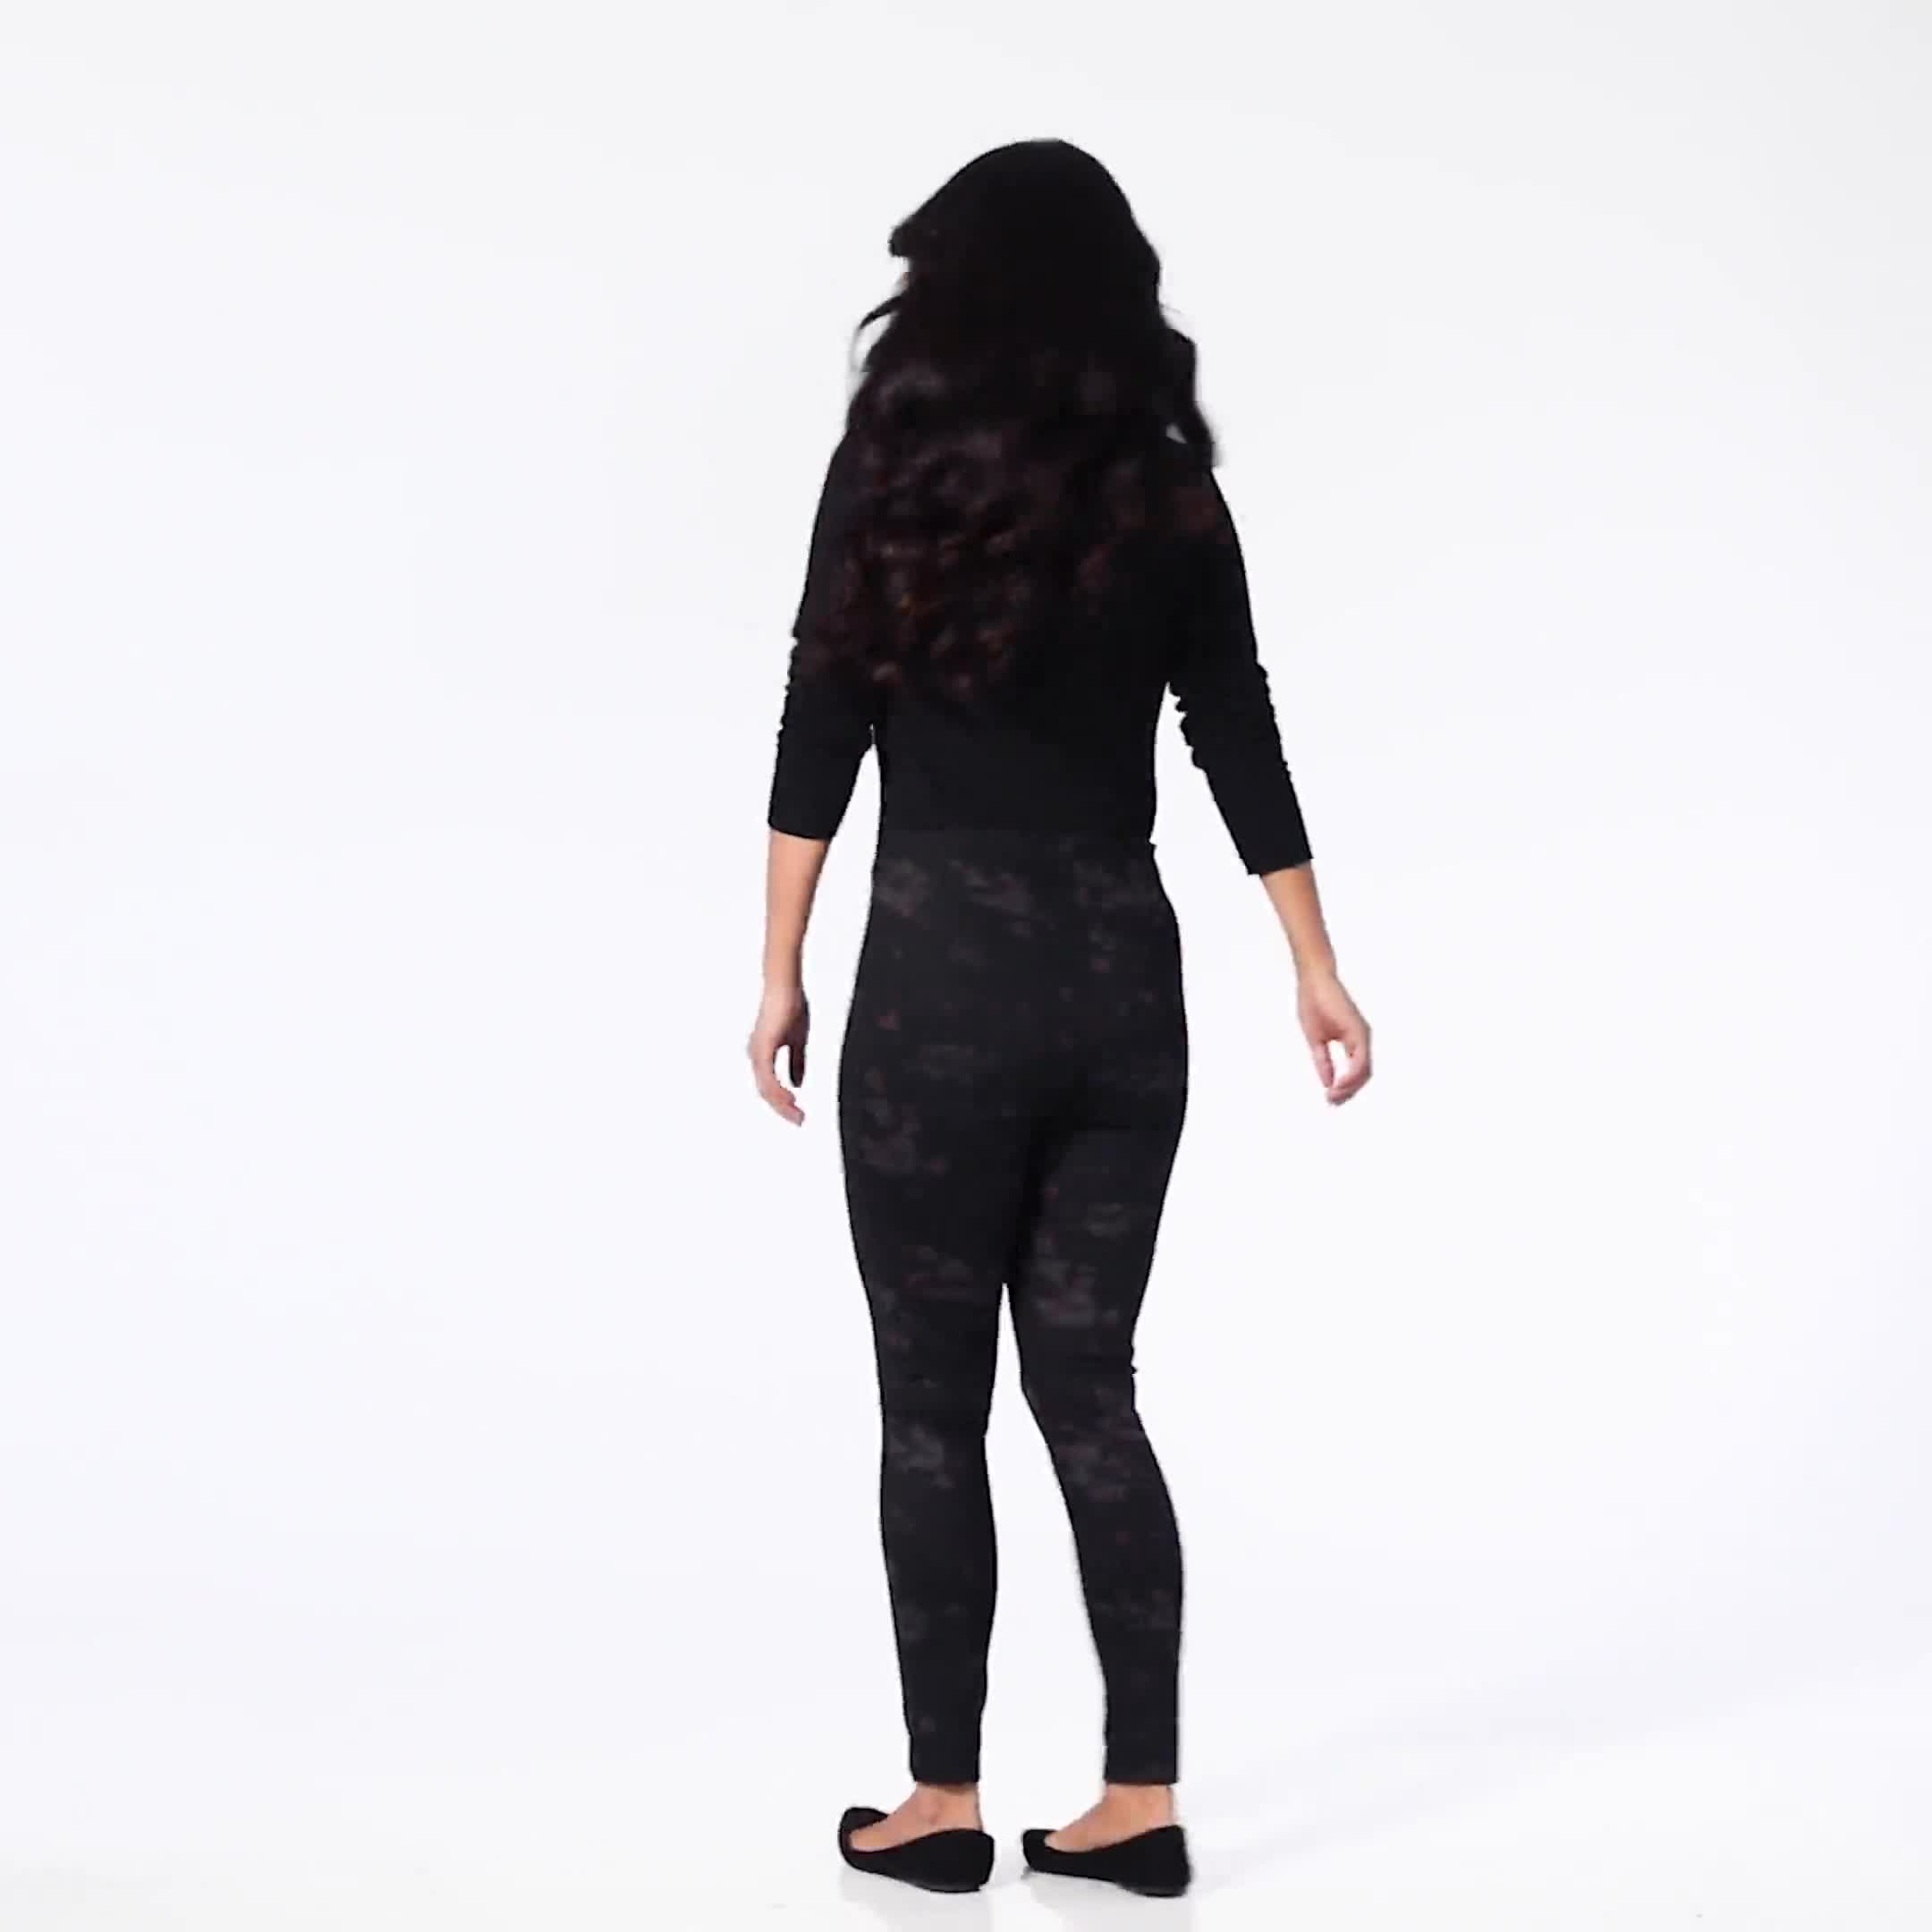 Ponte Floral Print Pull on Legging with Interior Elastic Waistband - Video